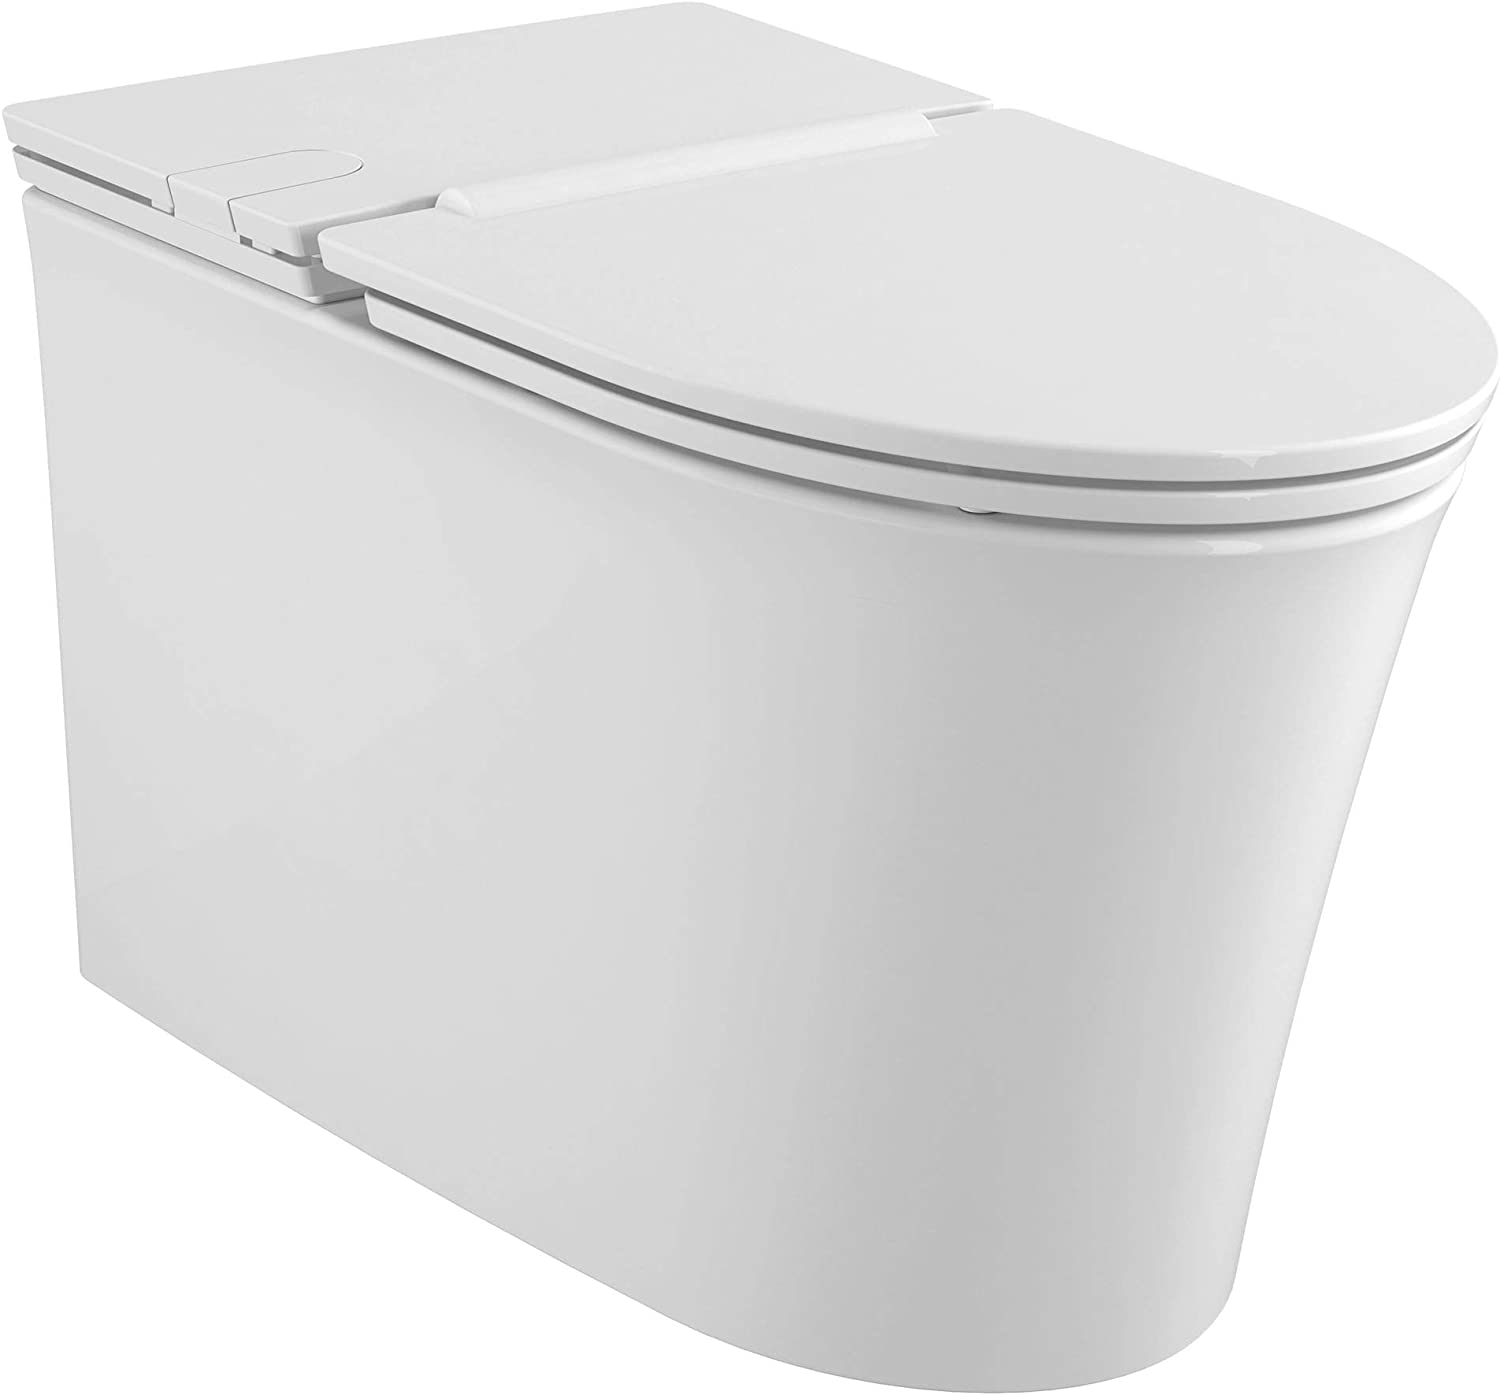 American Standard 2548A100.020 Studio S Right Height Elongated Low-Profile Toilet with Seat, White